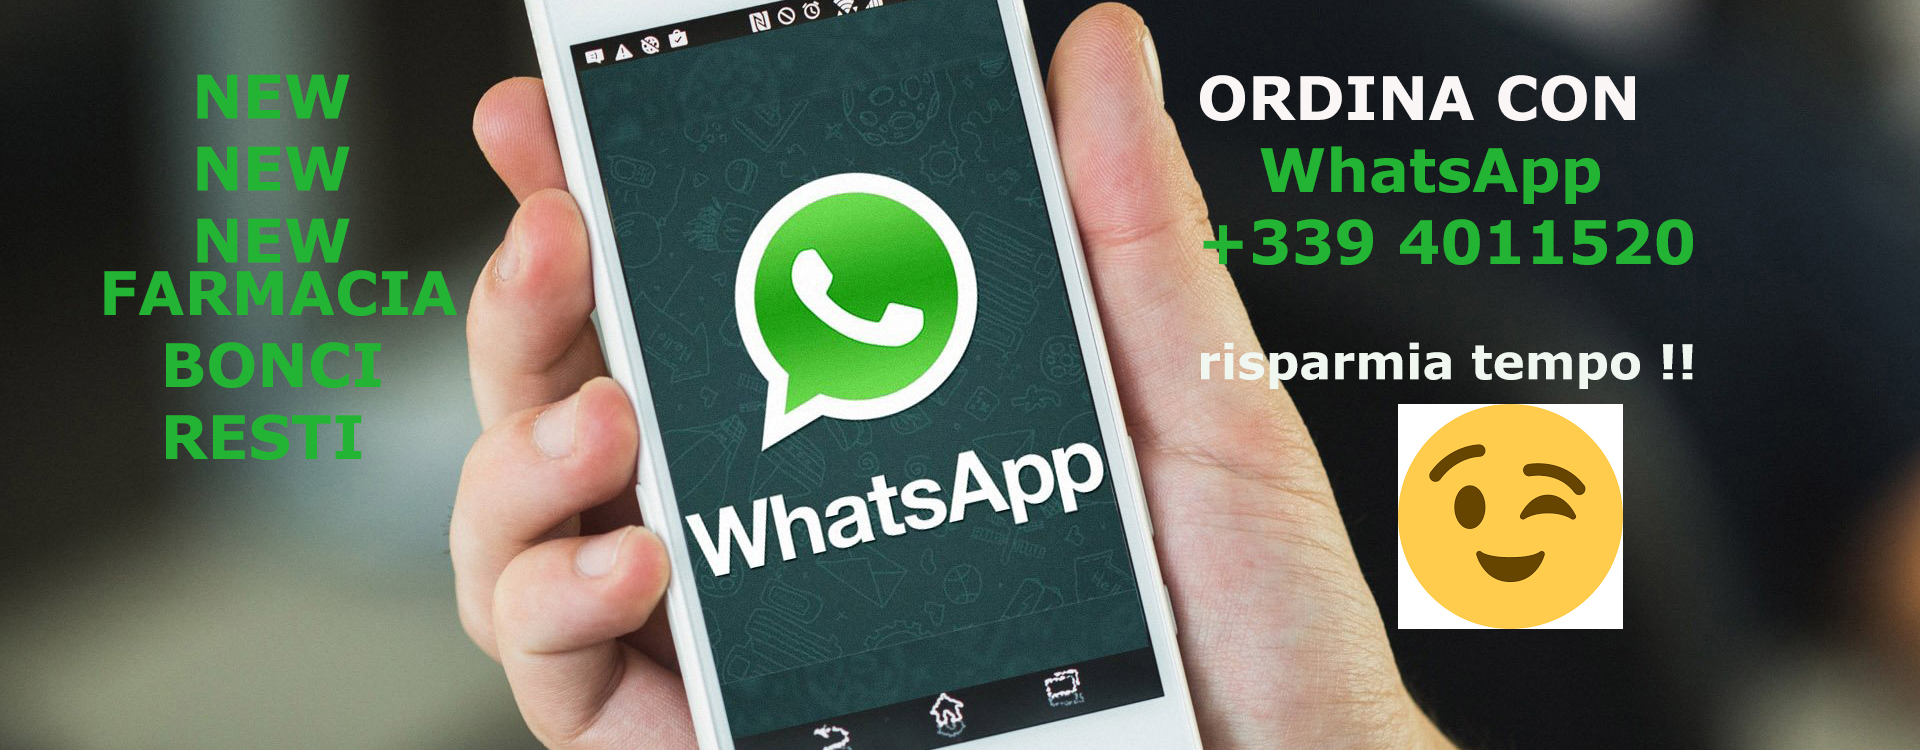 WhatsApp Farmacia